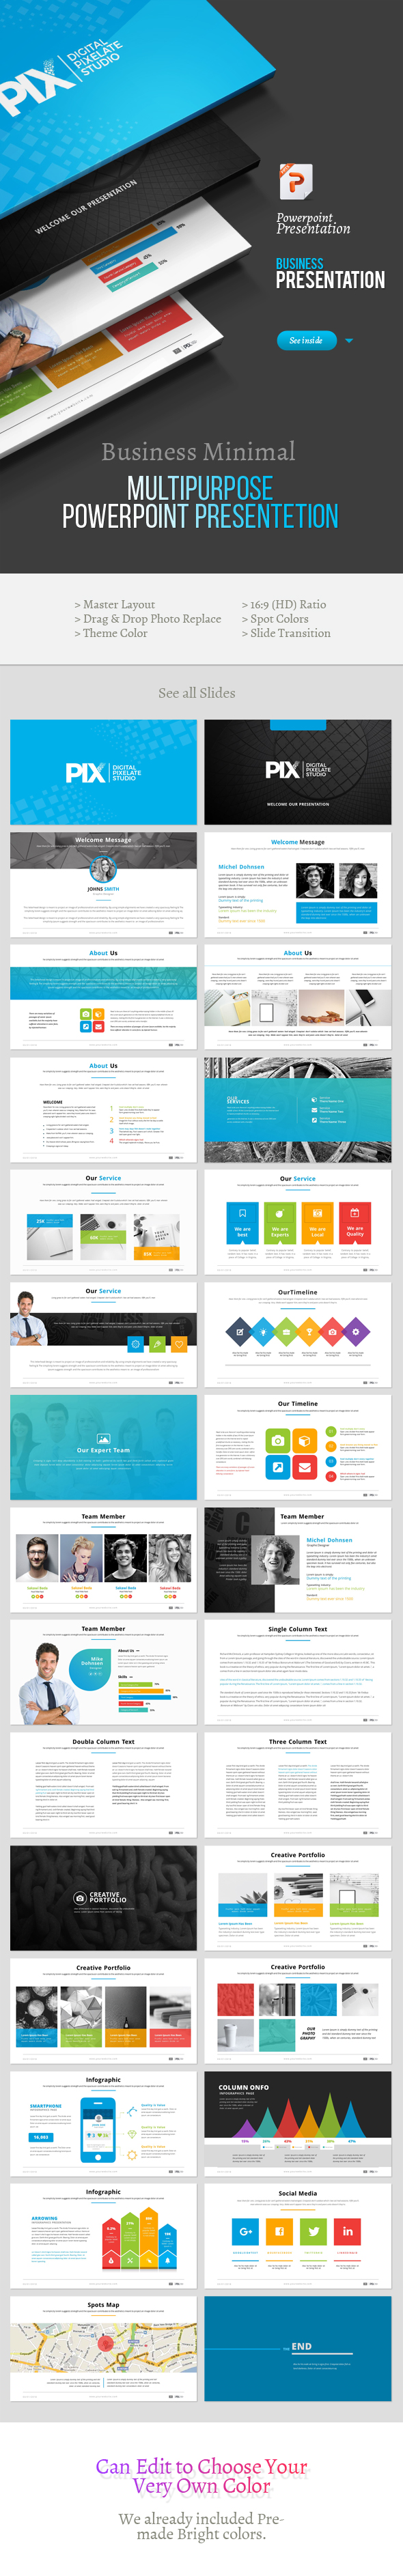 WhitePix Business Multipurpose Powerpoint Template - Business PowerPoint Templates